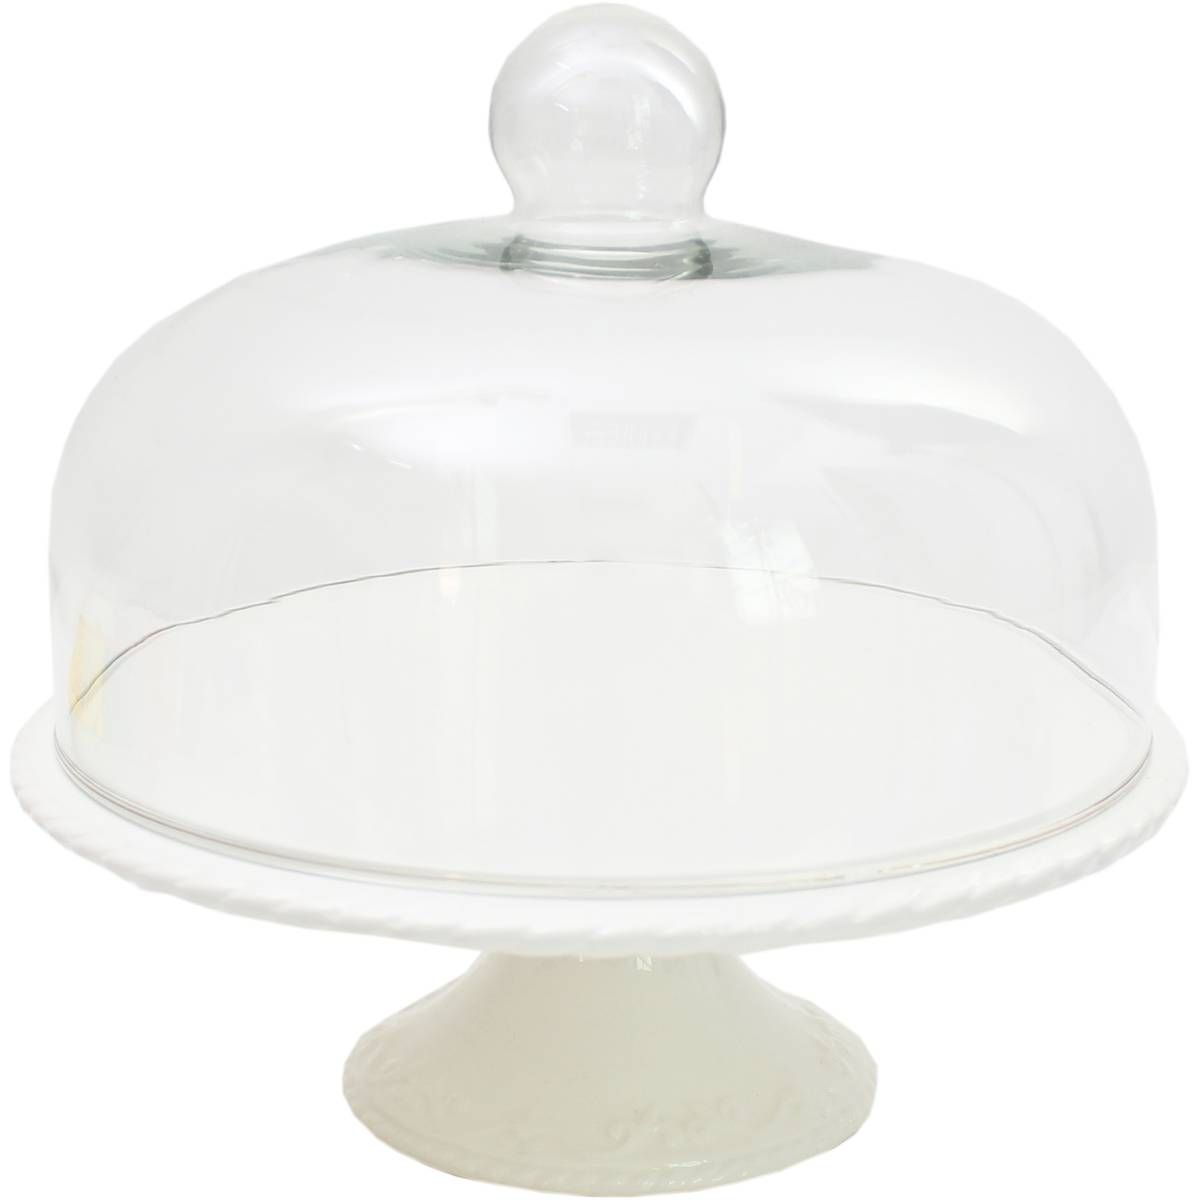 Ceramic cake stand and glass dome lid 10 inches glass